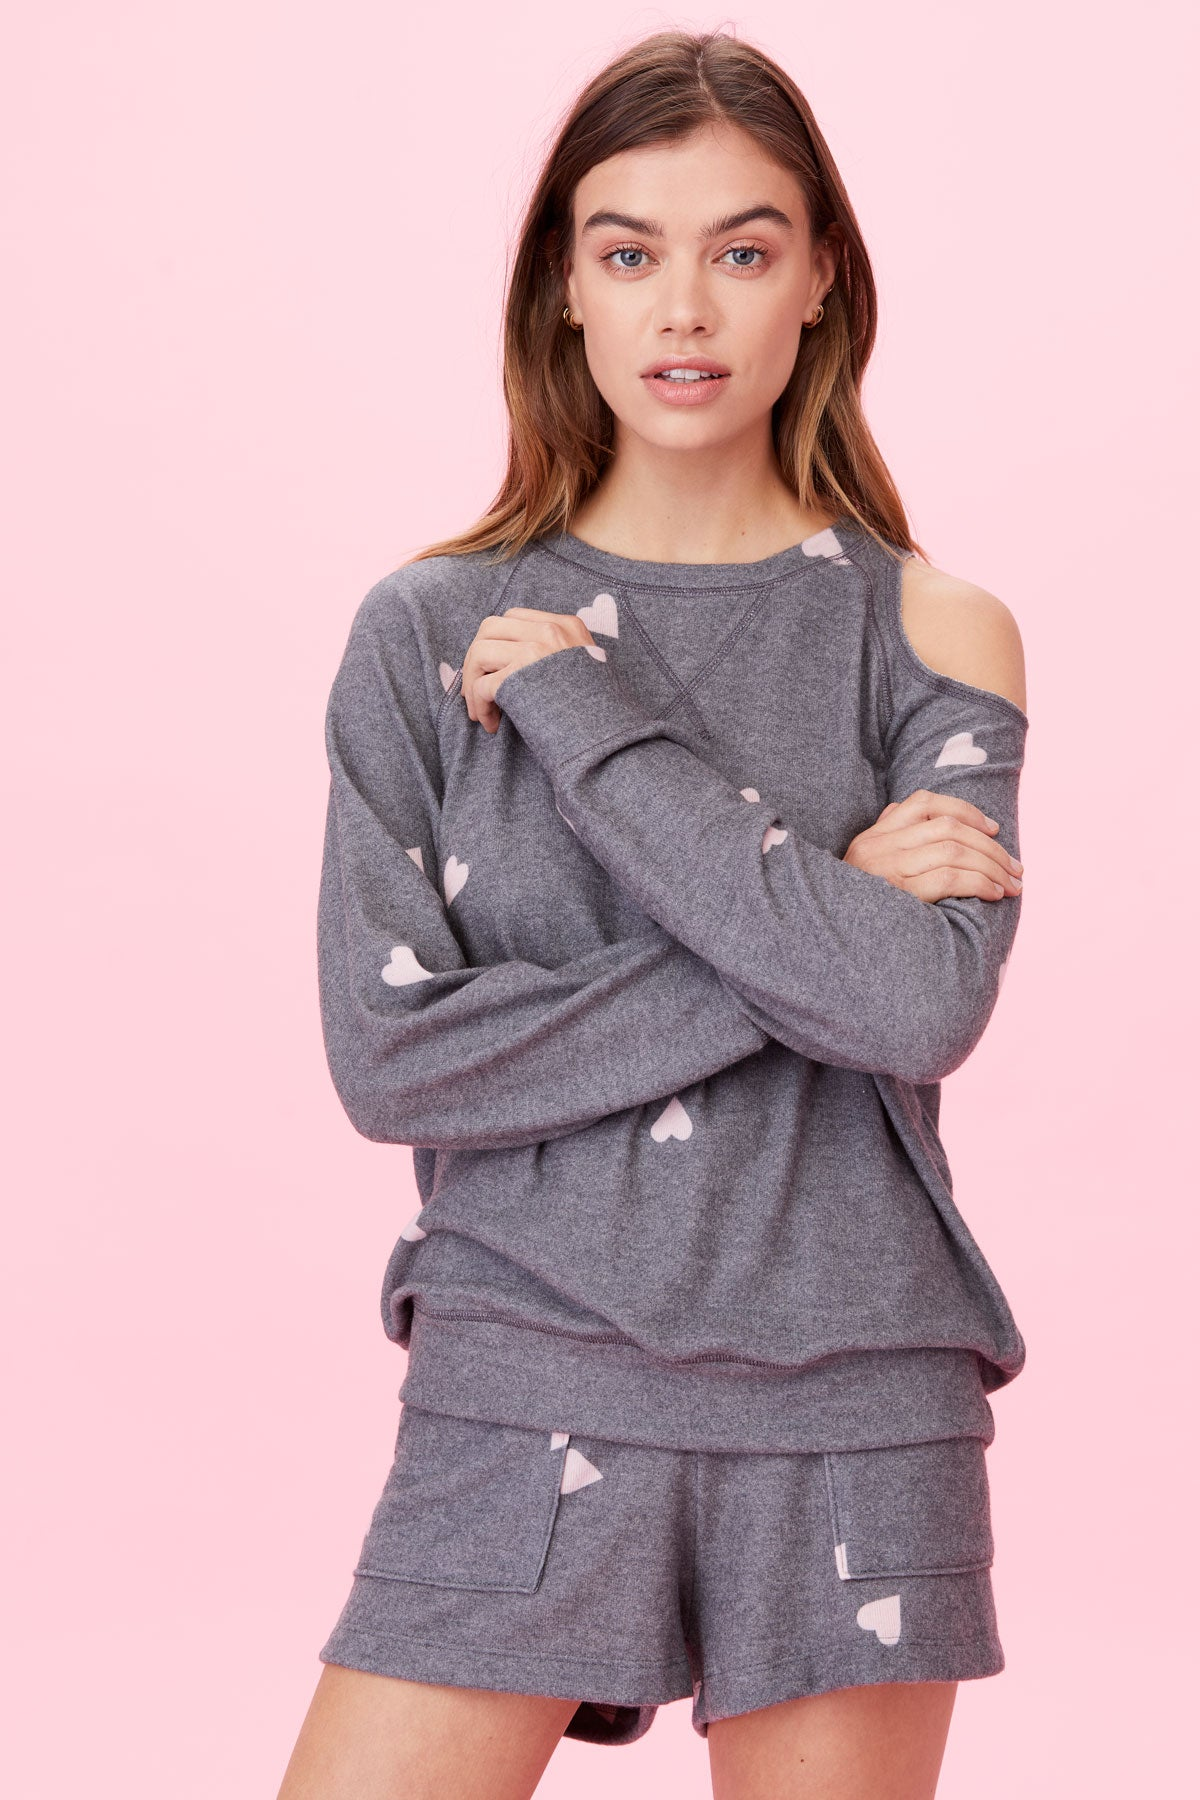 LNA Brushed Heart on My Sleeve Sweater in Grey and Pink Heart Print